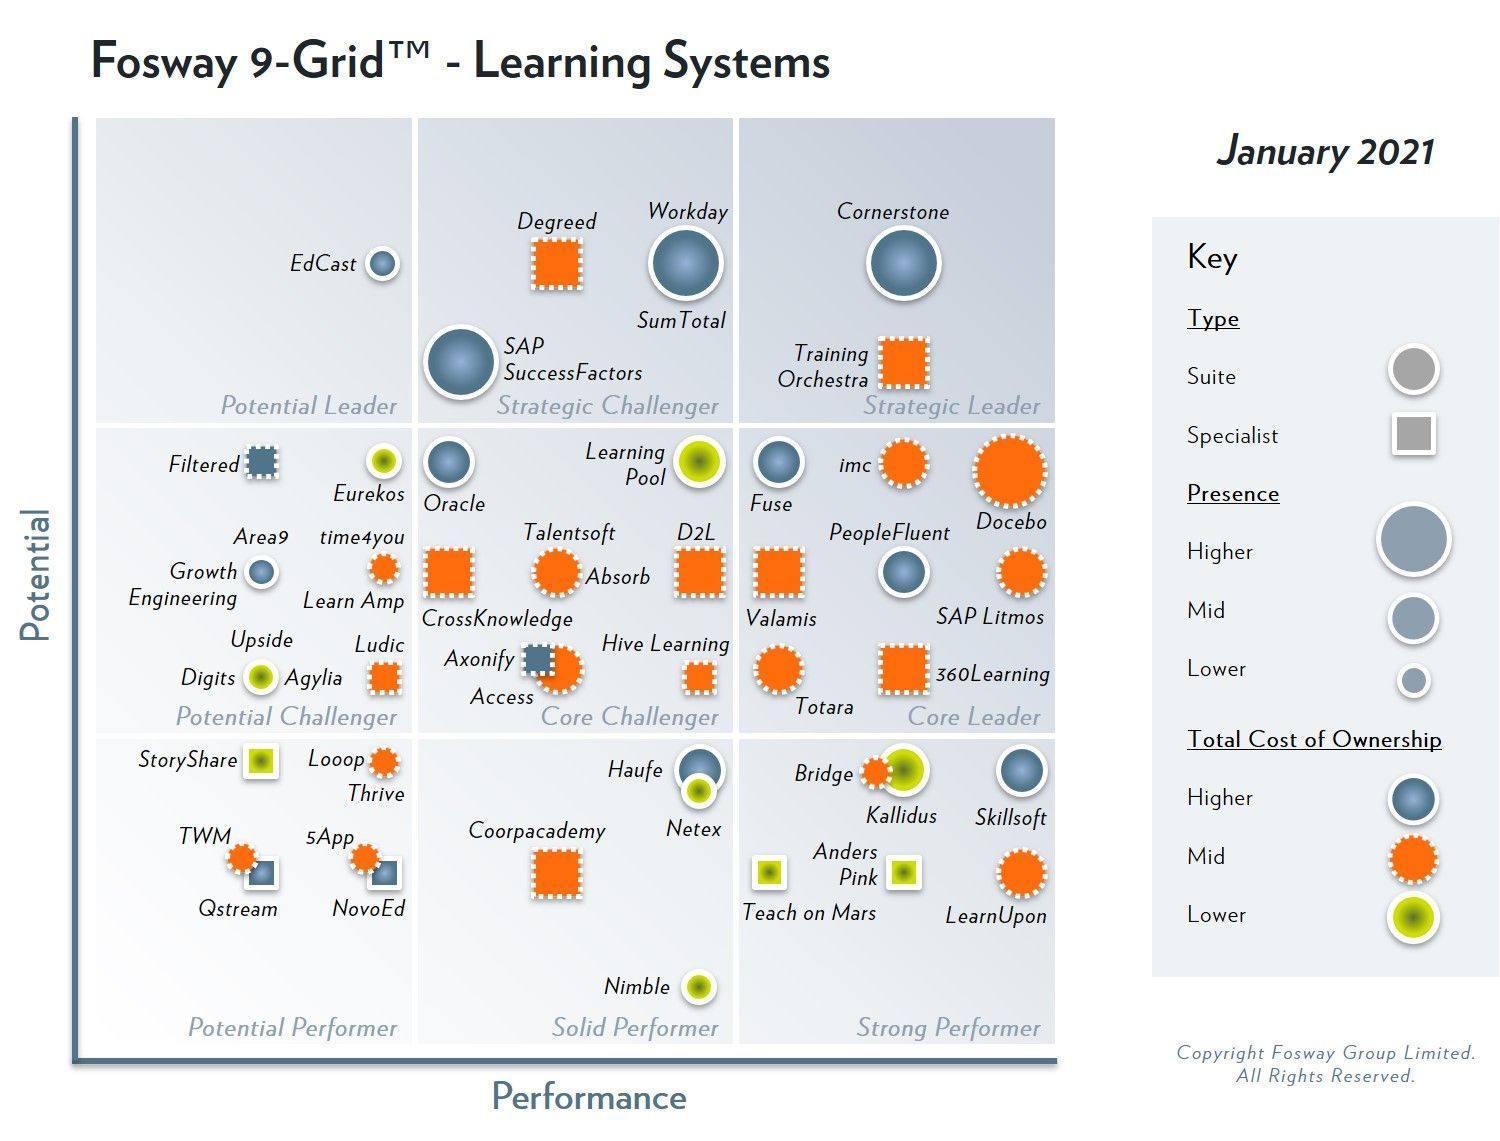 The 2021 Fosway 9-Grid™ for Learning Systems recognizes PeopleFluent as a Core Leader